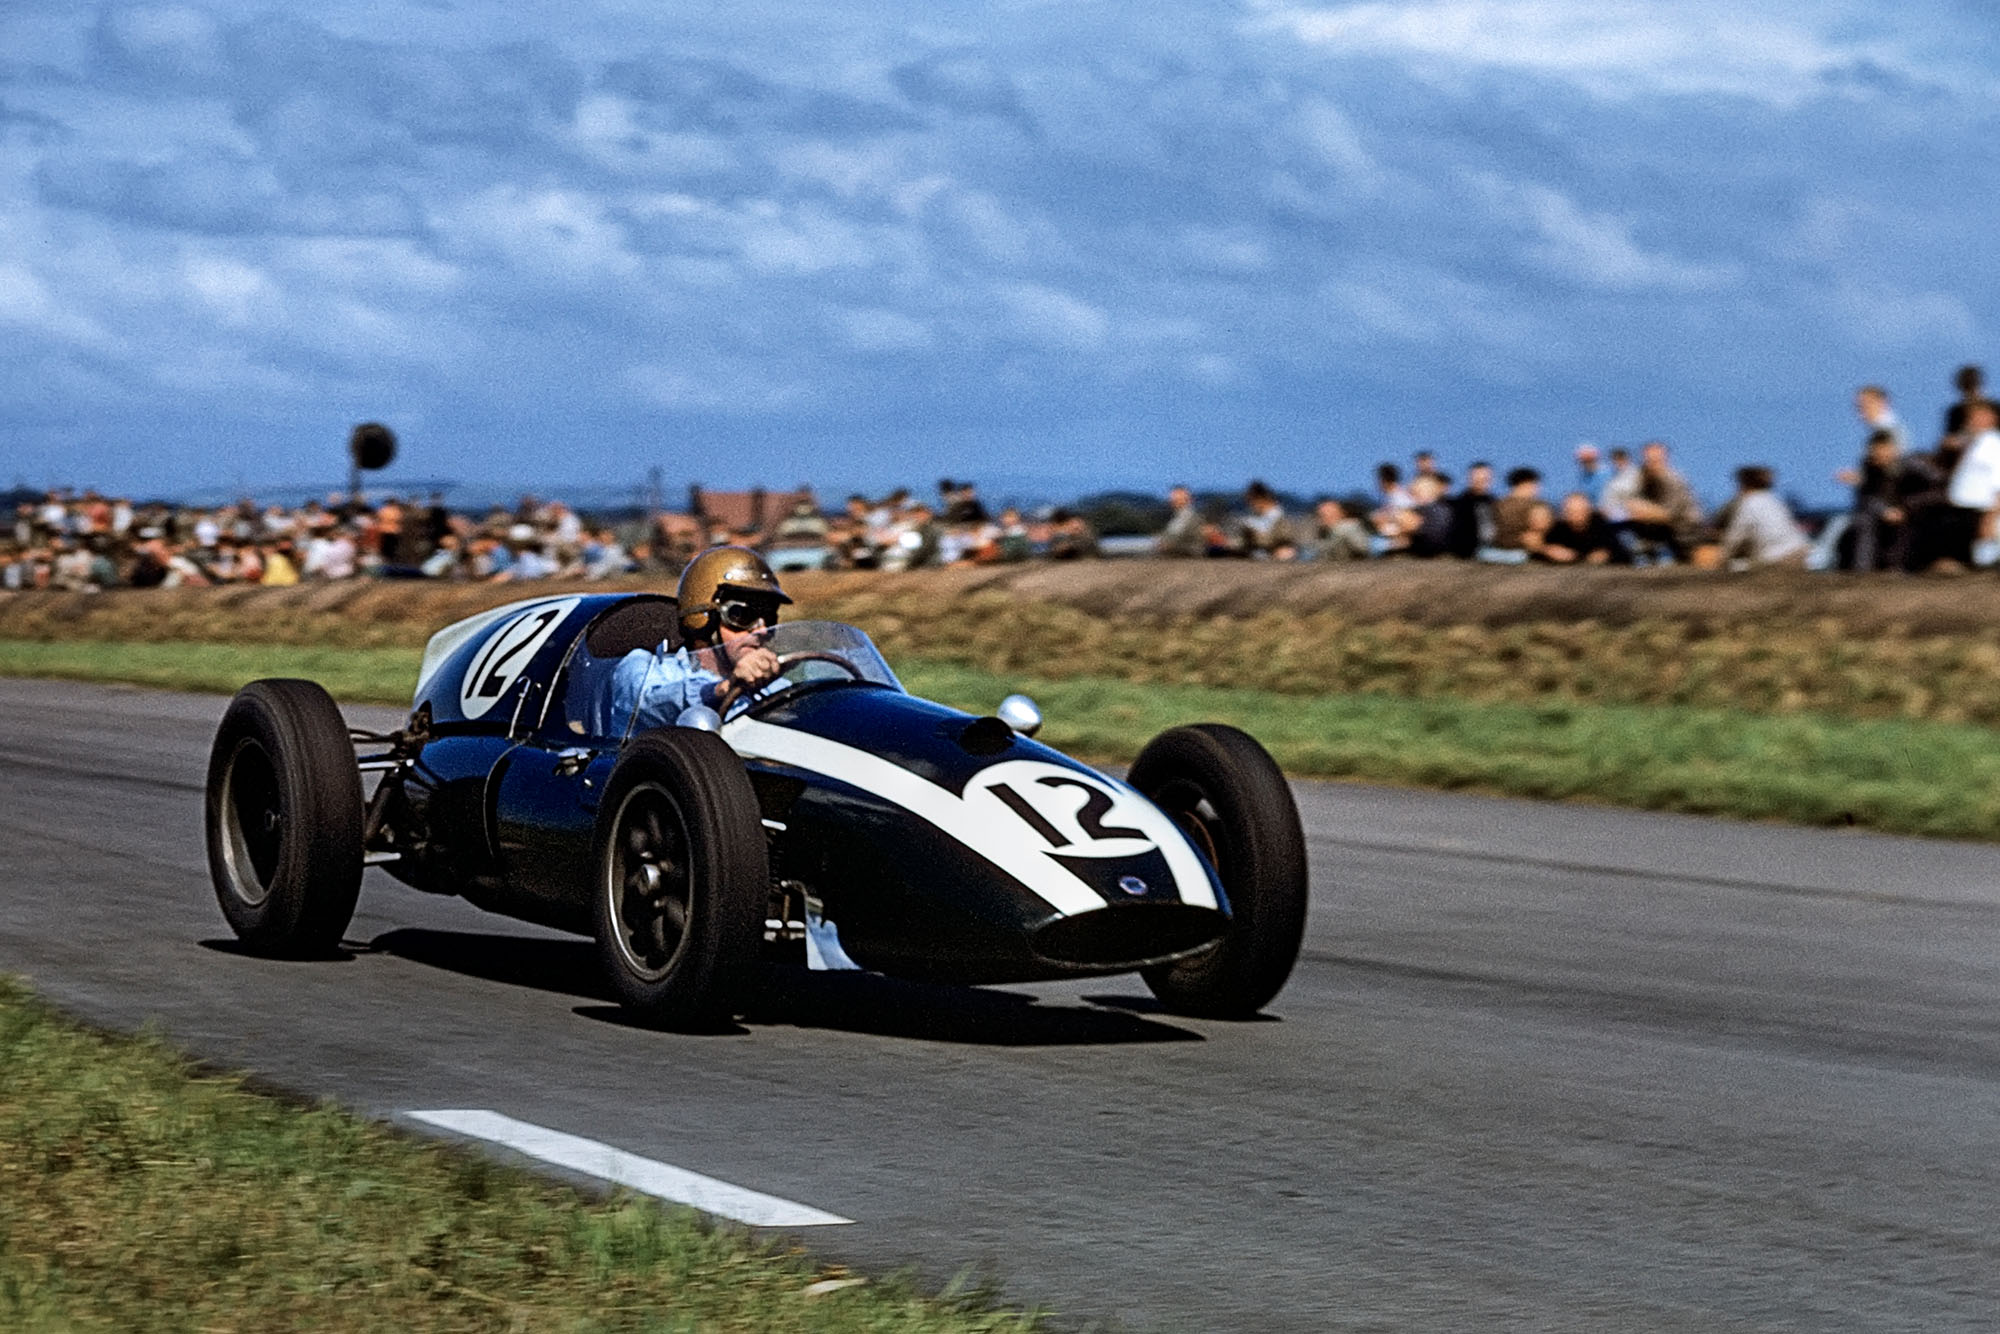 ack Brabham, Cooper-Climax T51, Grand Prix of Great Britain, Aintree, 18 July 1959. (Photo by Bernard Cahier/Getty Images)